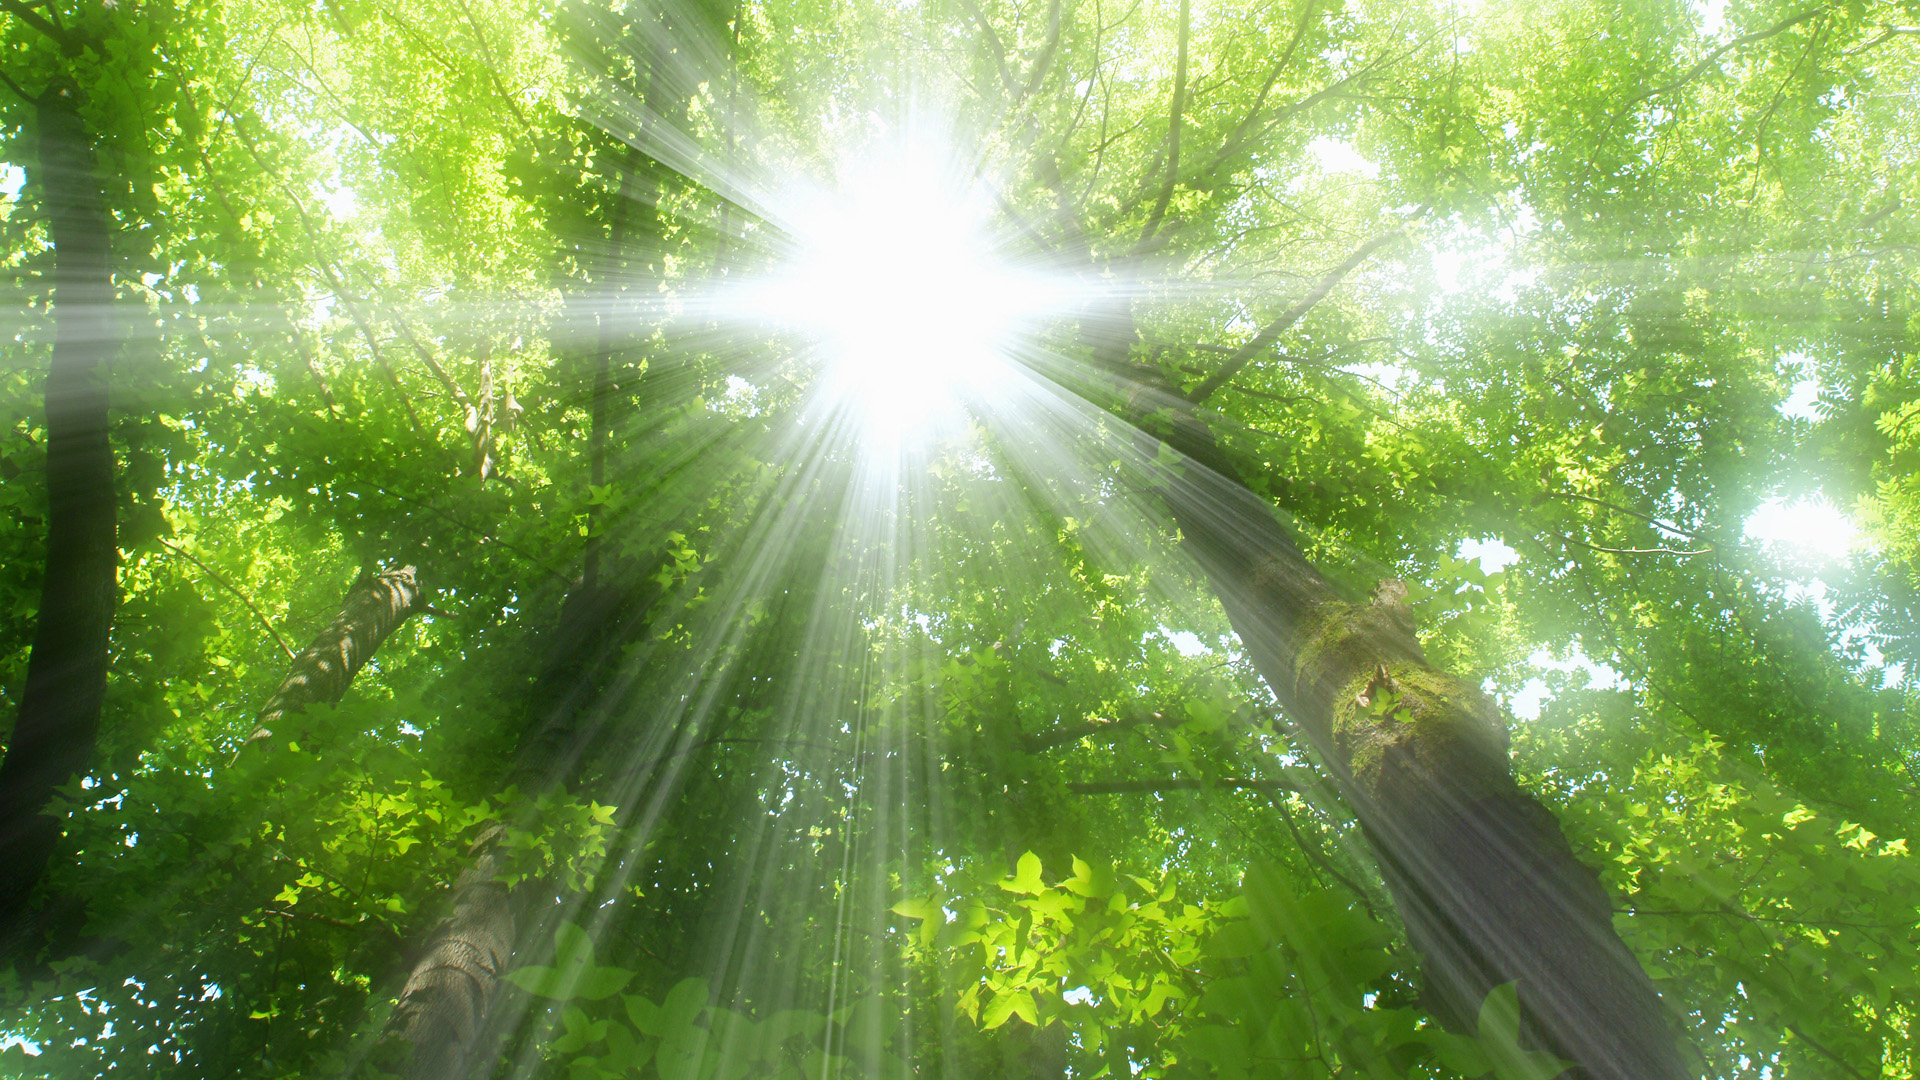 Sunlight and trees with green leaves, soft focus, lens flare, Osaka prefecture, Japan